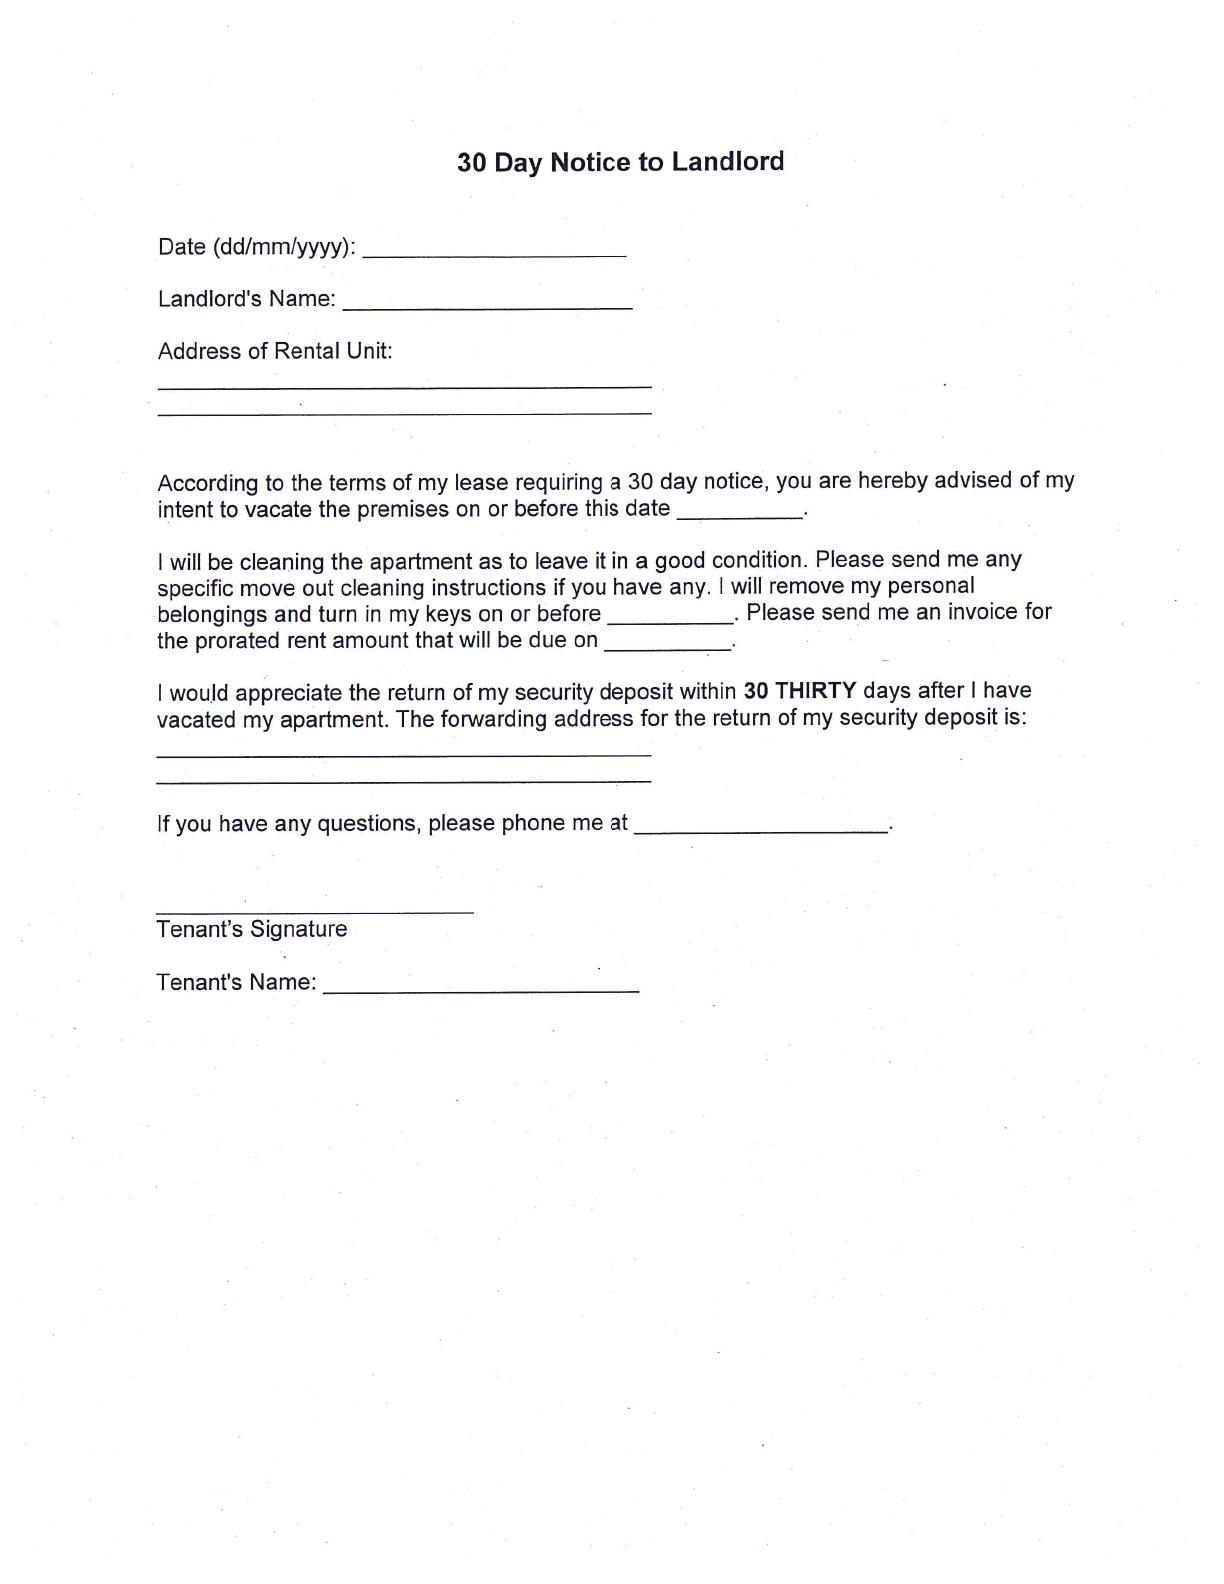 Free 30 Day Notice To Landlord